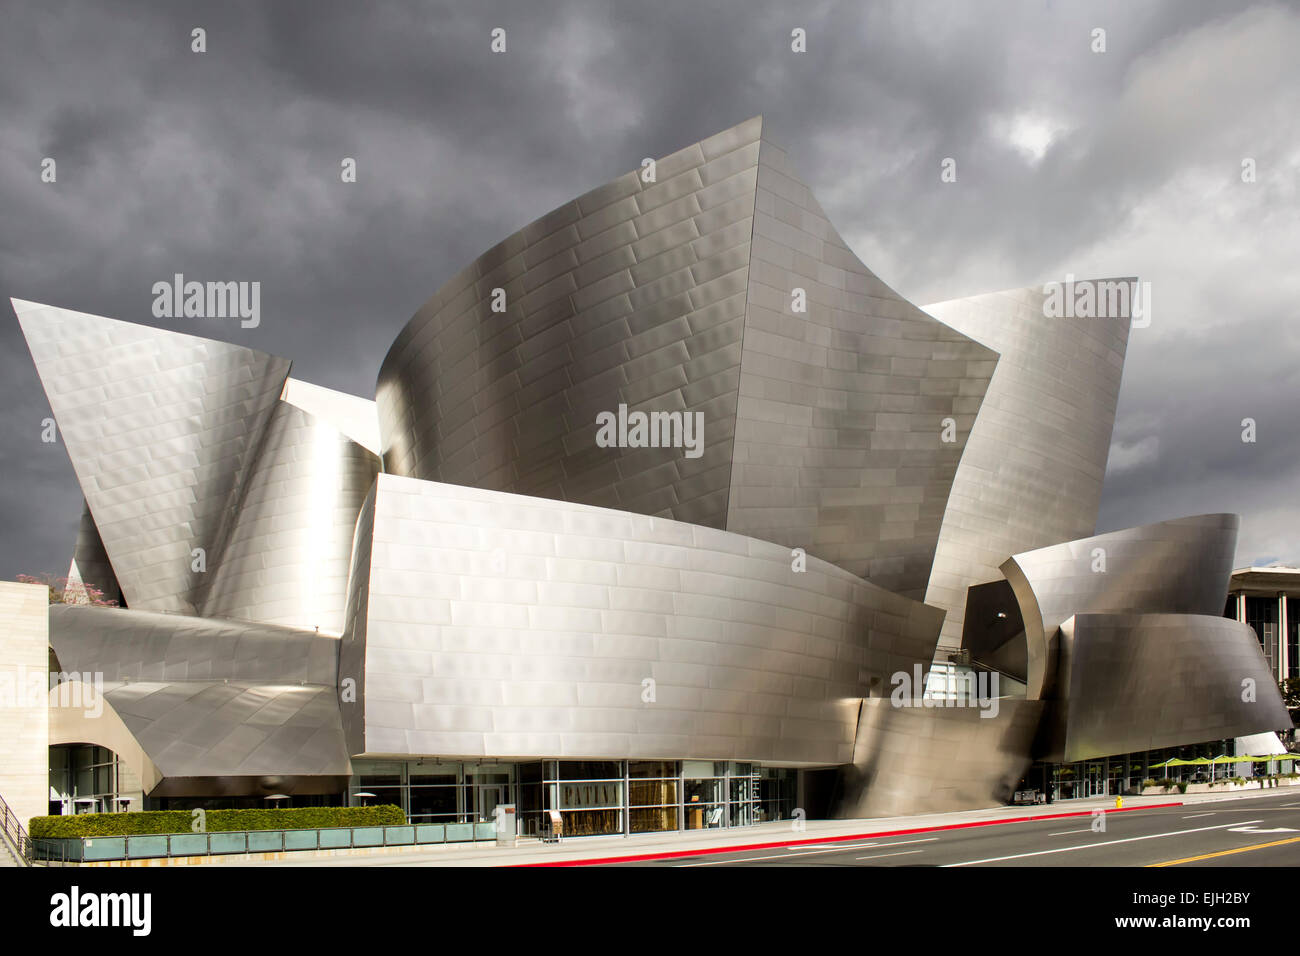 Walt Disney Concert Hall (Architekt Frank Gehry), Los Angeles, Kalifornien USA Stockbild